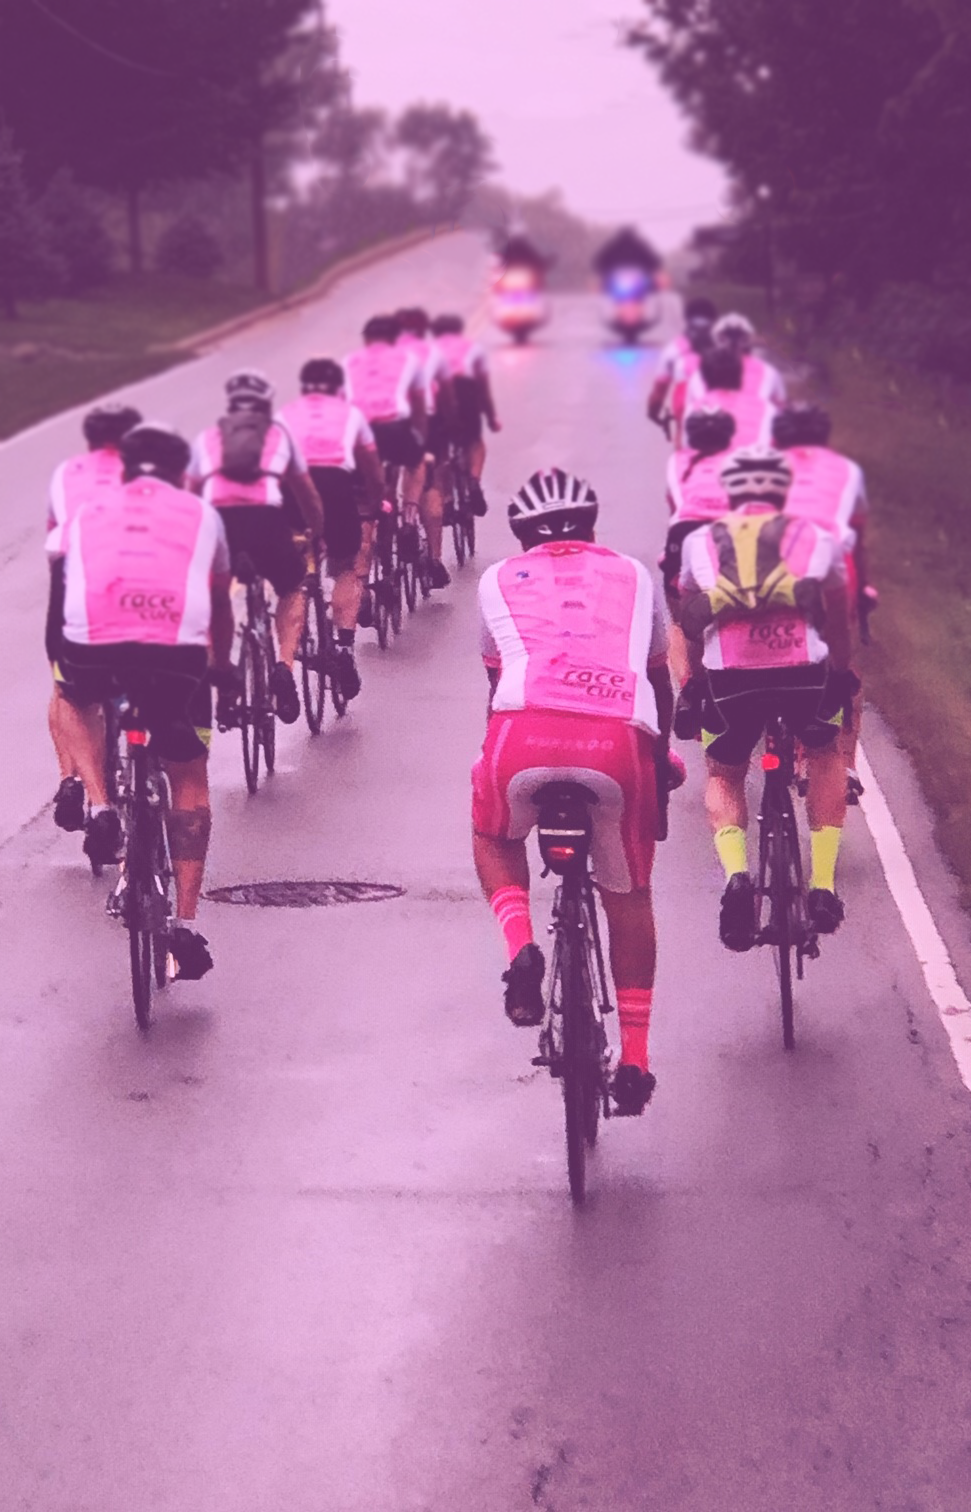 Ride For The Cure - The Tour de Komen is an annual 100-mile cycling event to raise funds for Komen Central Indiana & the fight against breast cancer. We've raised over $70k to date, & this year we're aiming even higher. The 2019 ride is set to take place September 27th. Learn more.